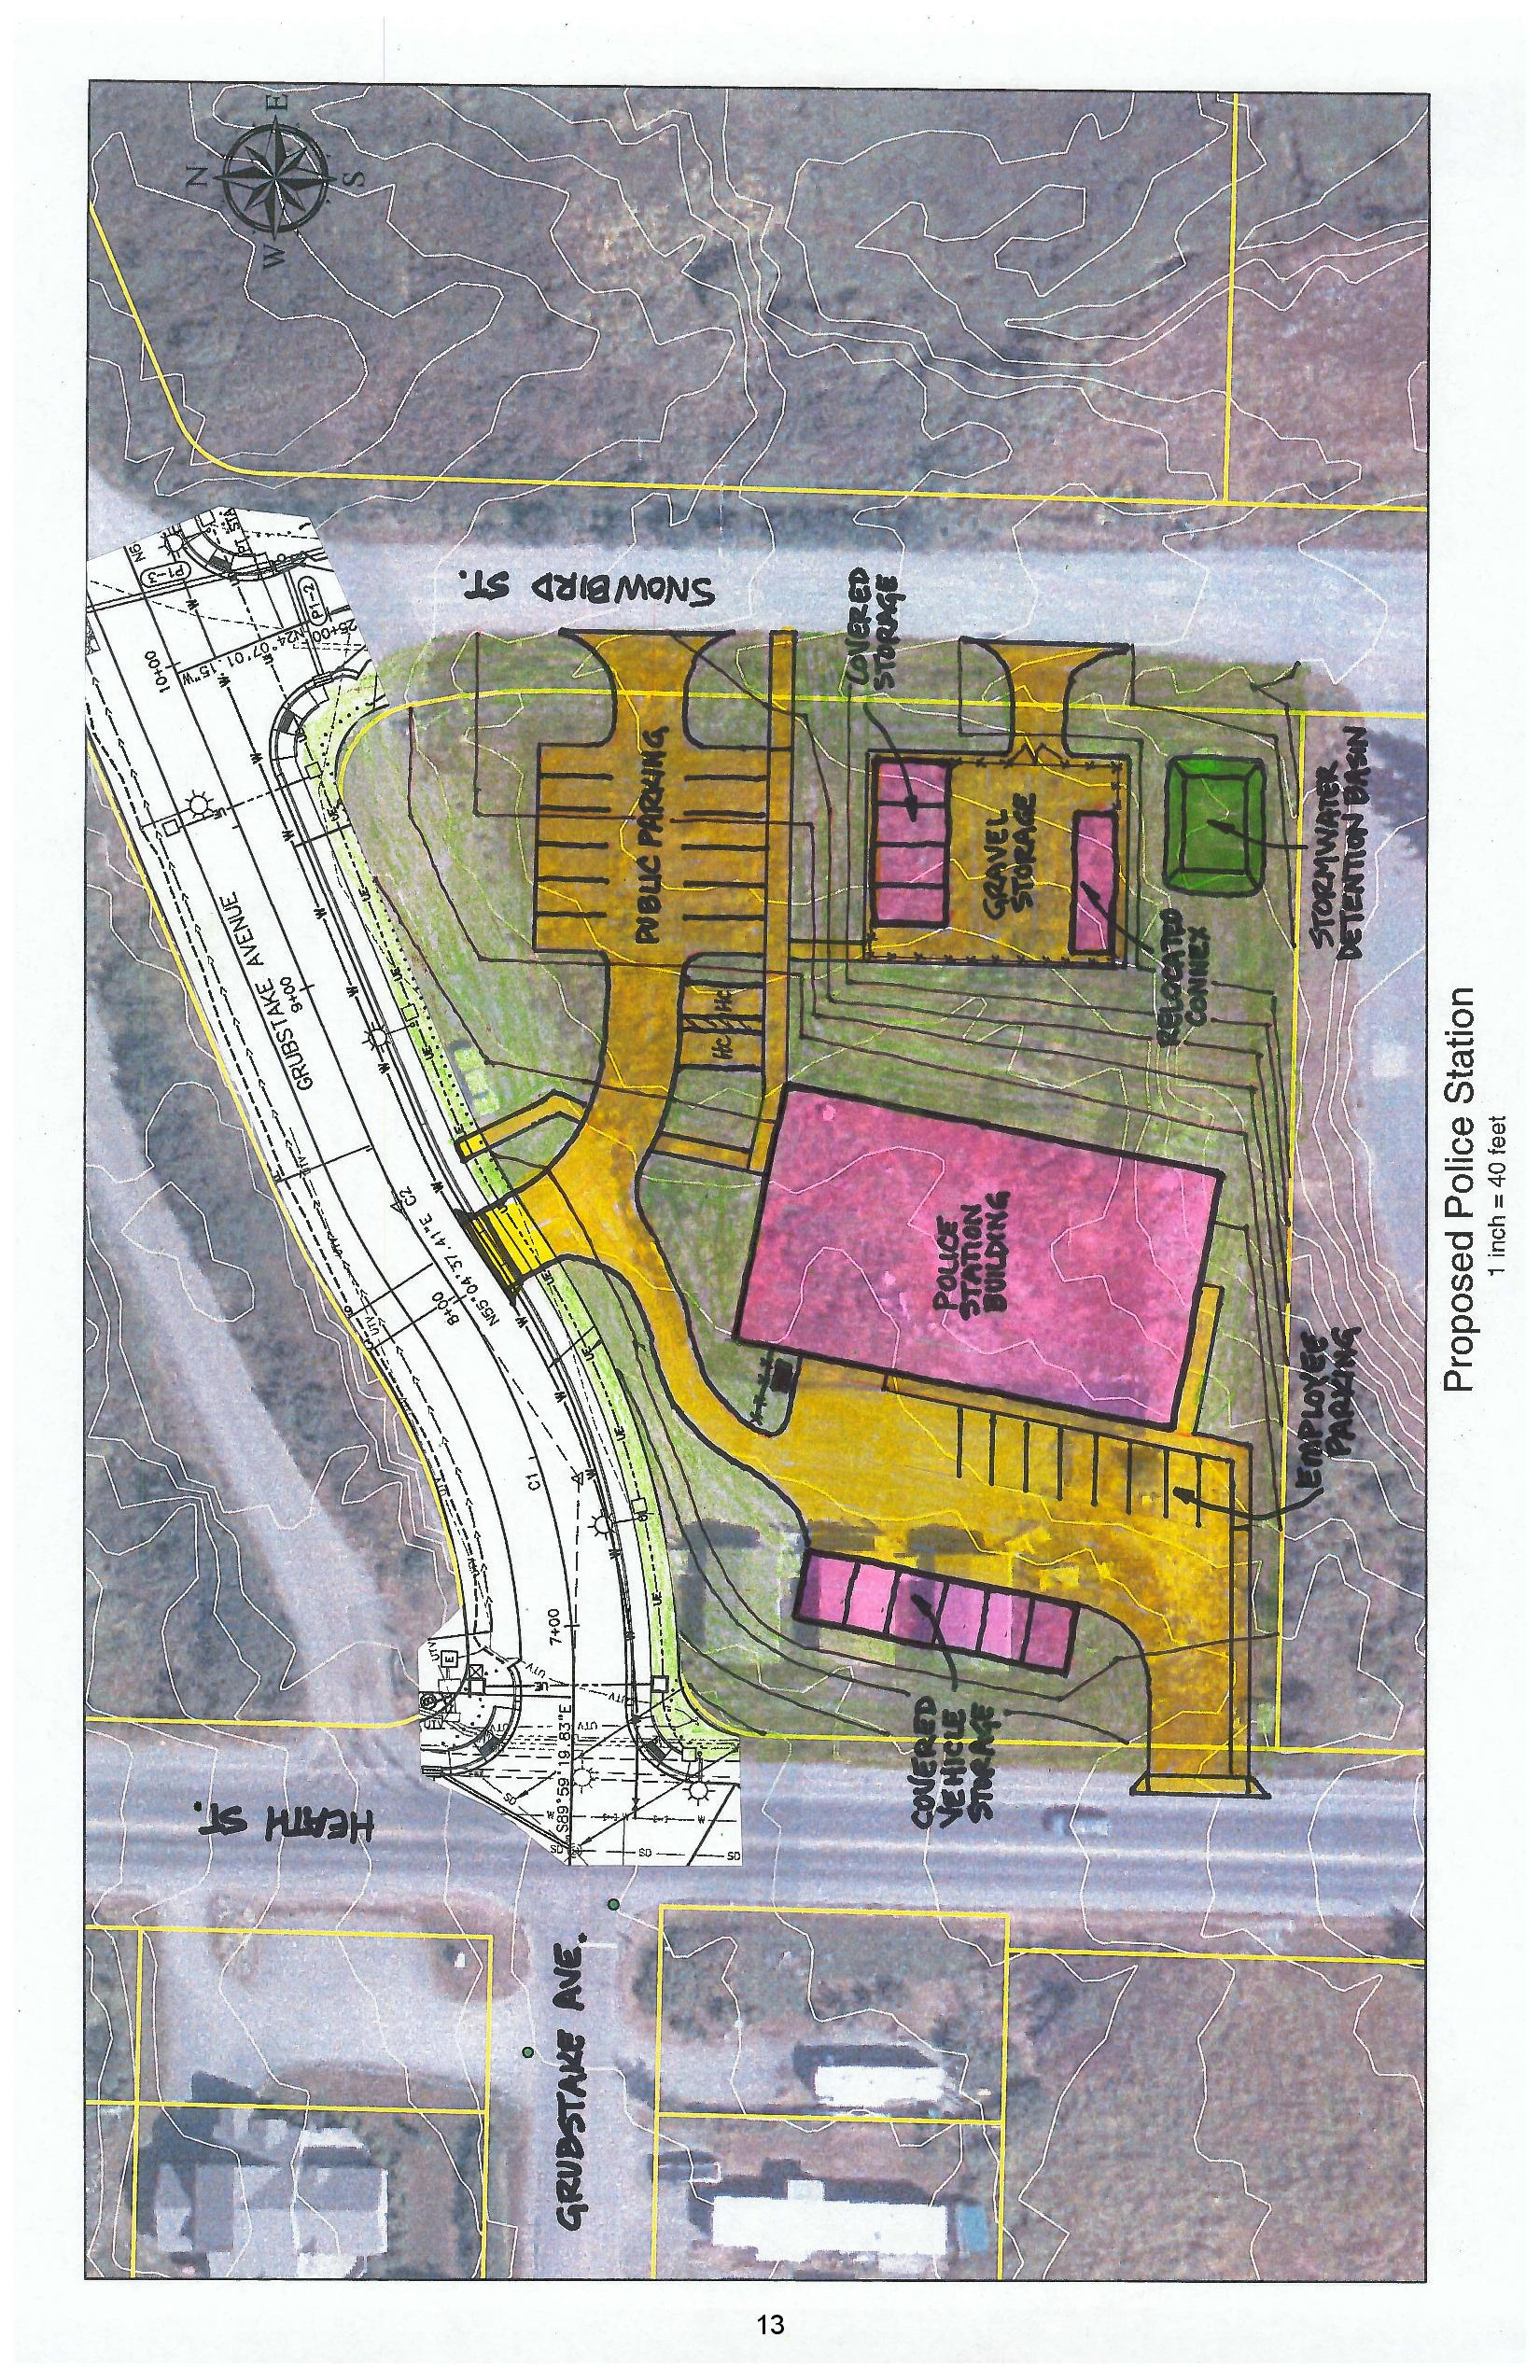 Council gains some consensus on police station project | KBBI